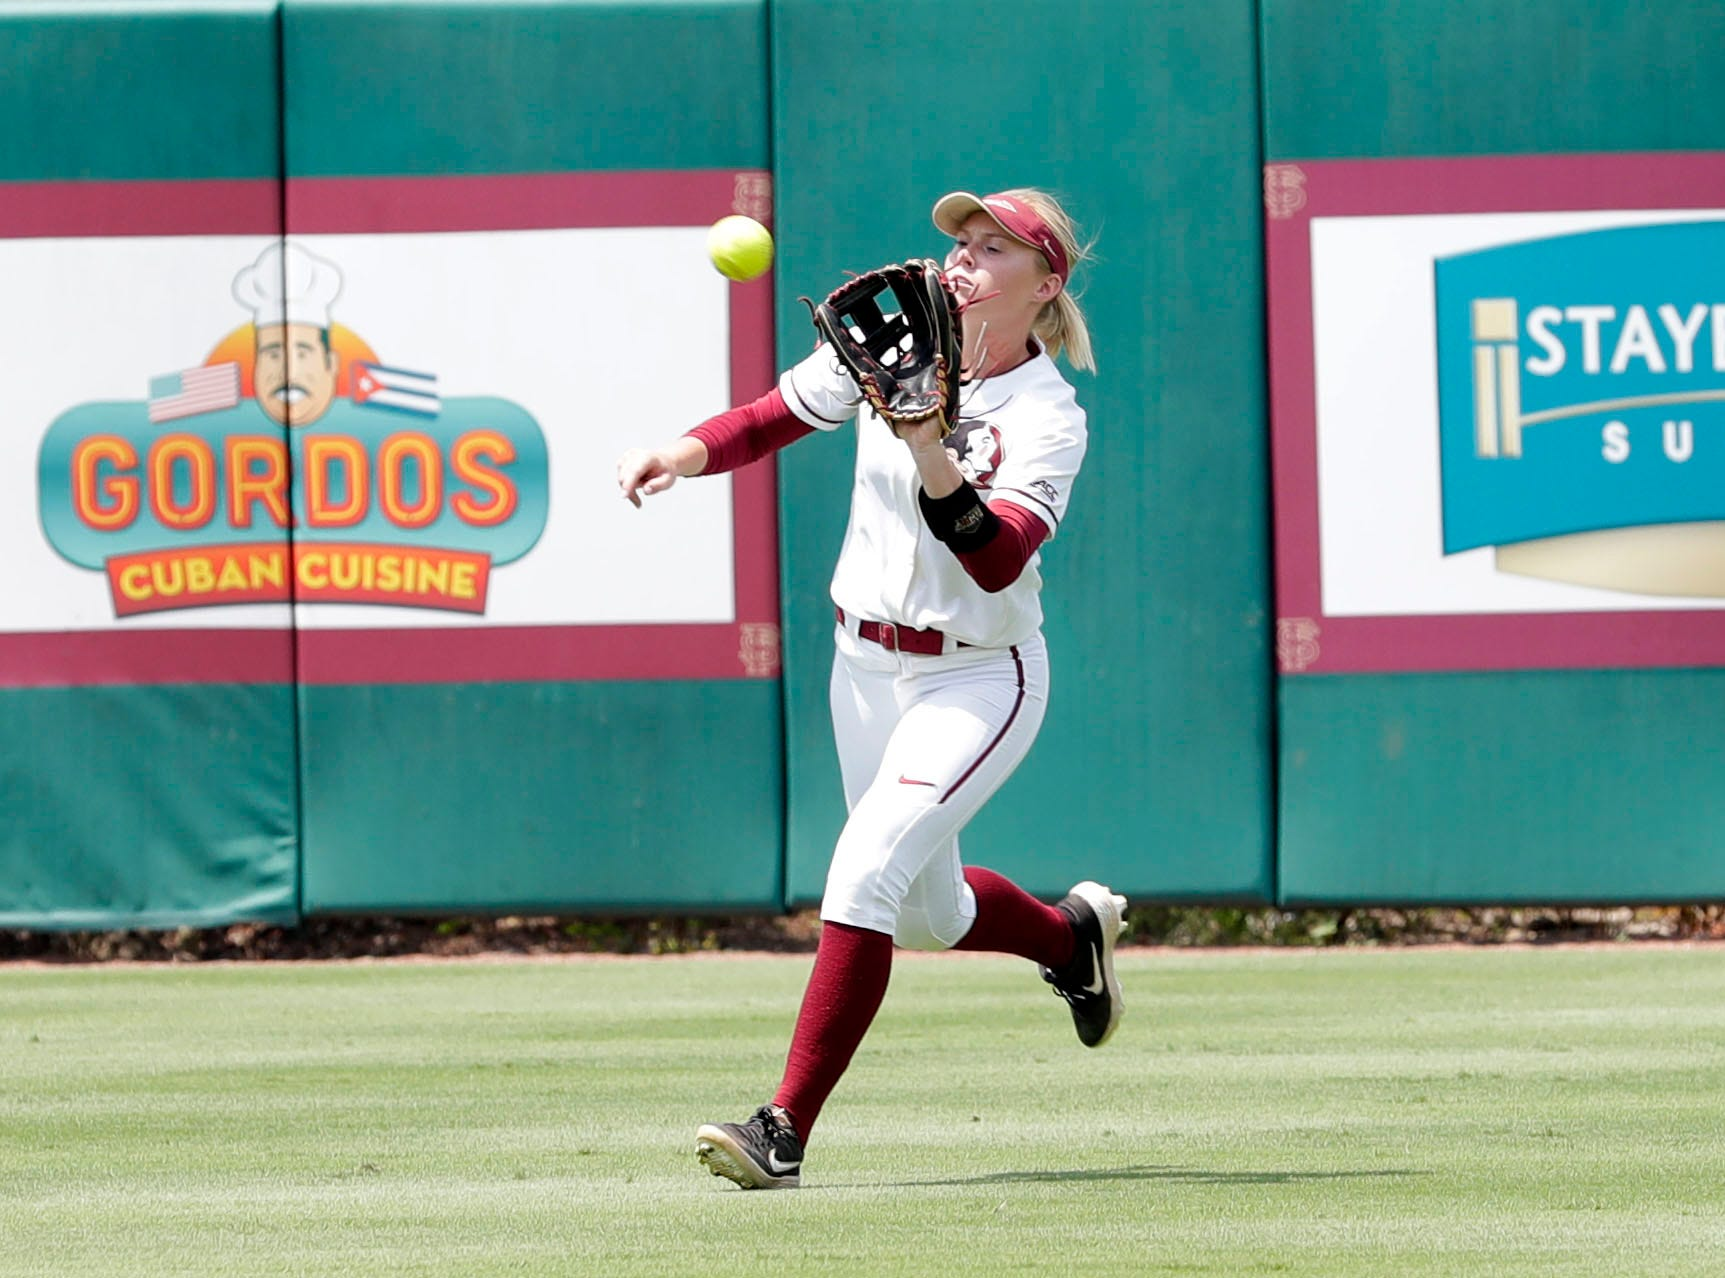 Florida State Seminoles infielder Dani Morgan (1) catches a fly ball. The Florida State Seminoles host the Bethune-Cookman Wildcats in the first round of the NCAA Regional Playoffs Friday, May 17, 2019.